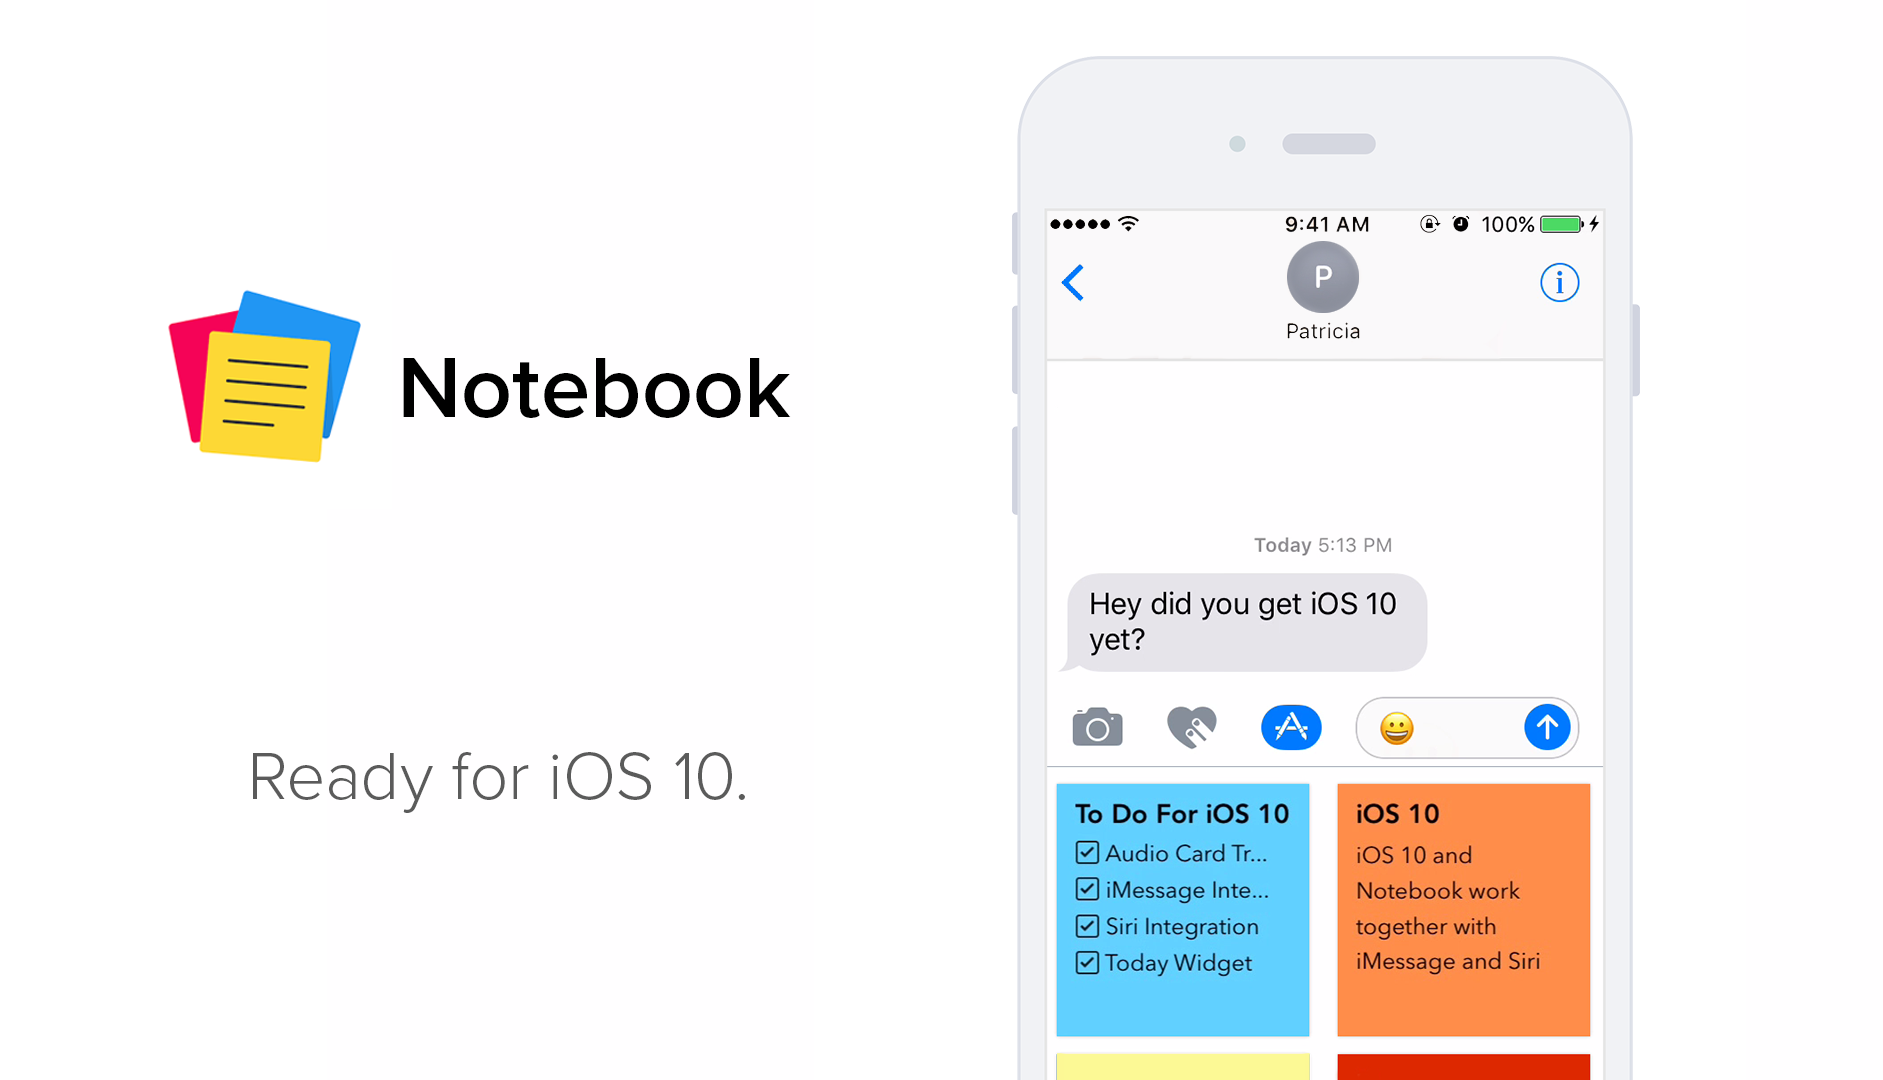 Notebook Ready for iOS 10